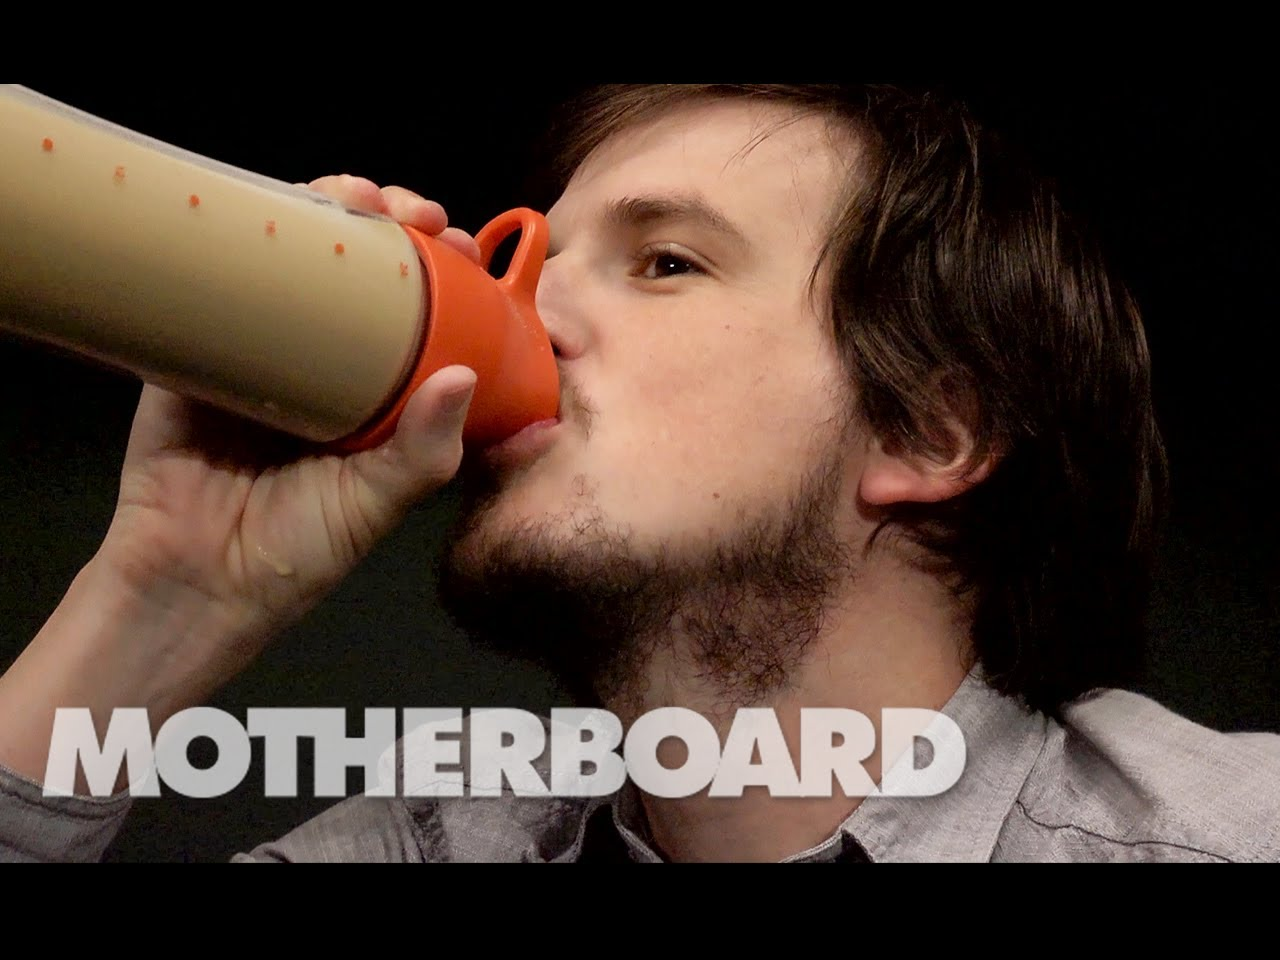 Soylent: How One Man Stopped Eating for 30 Days